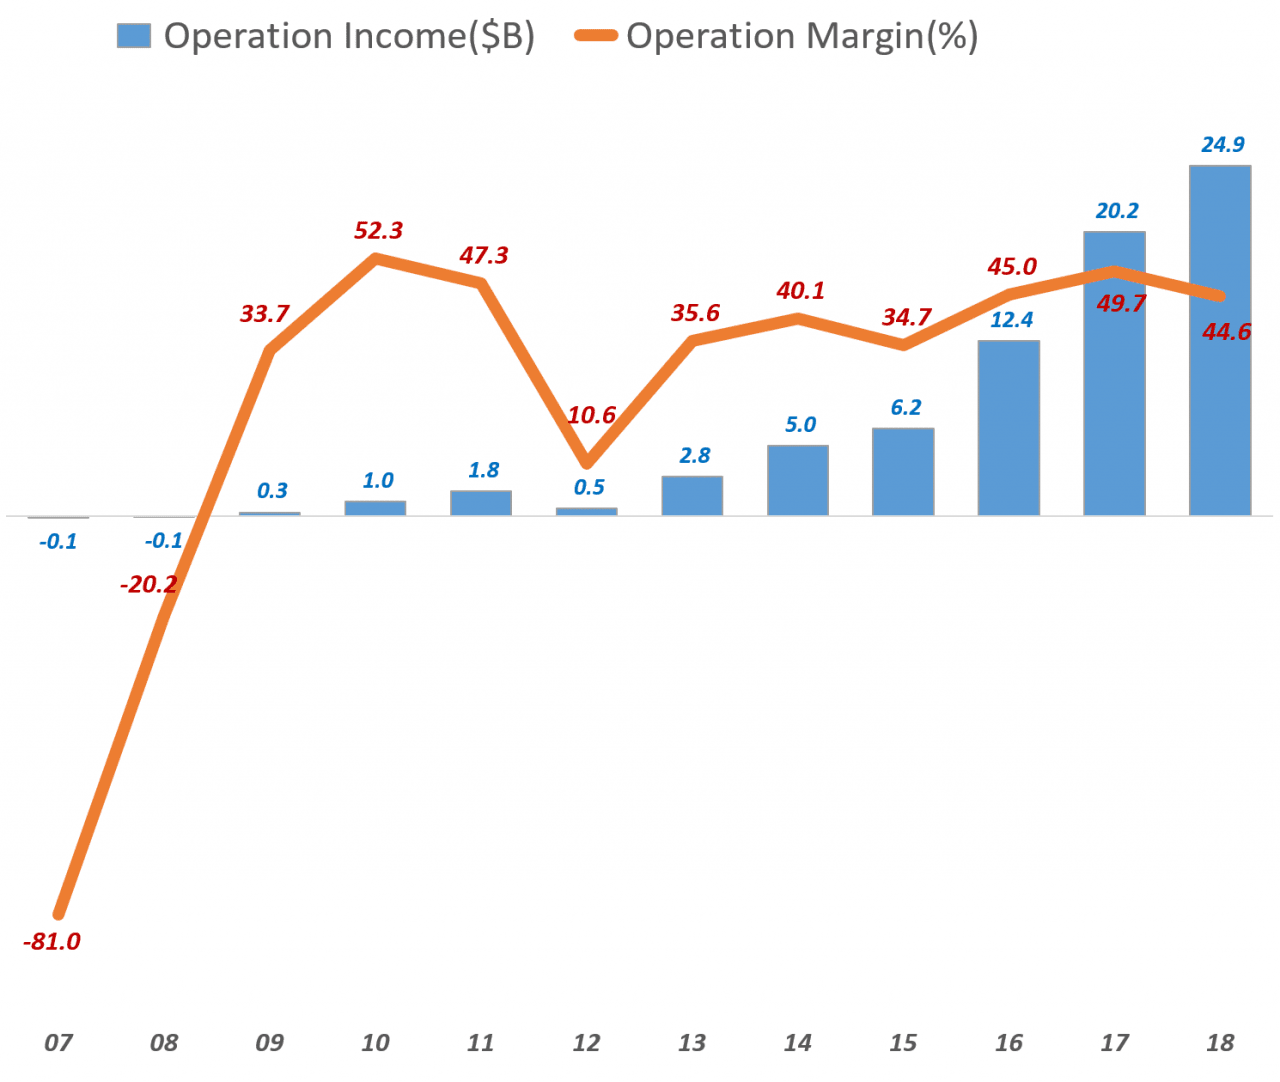 페이스북 연도별 영업이익 추이(2007년 ~ 2018년), Facebook yearly Operation Income trend, Data - invest.fb.com, Graph by Happist